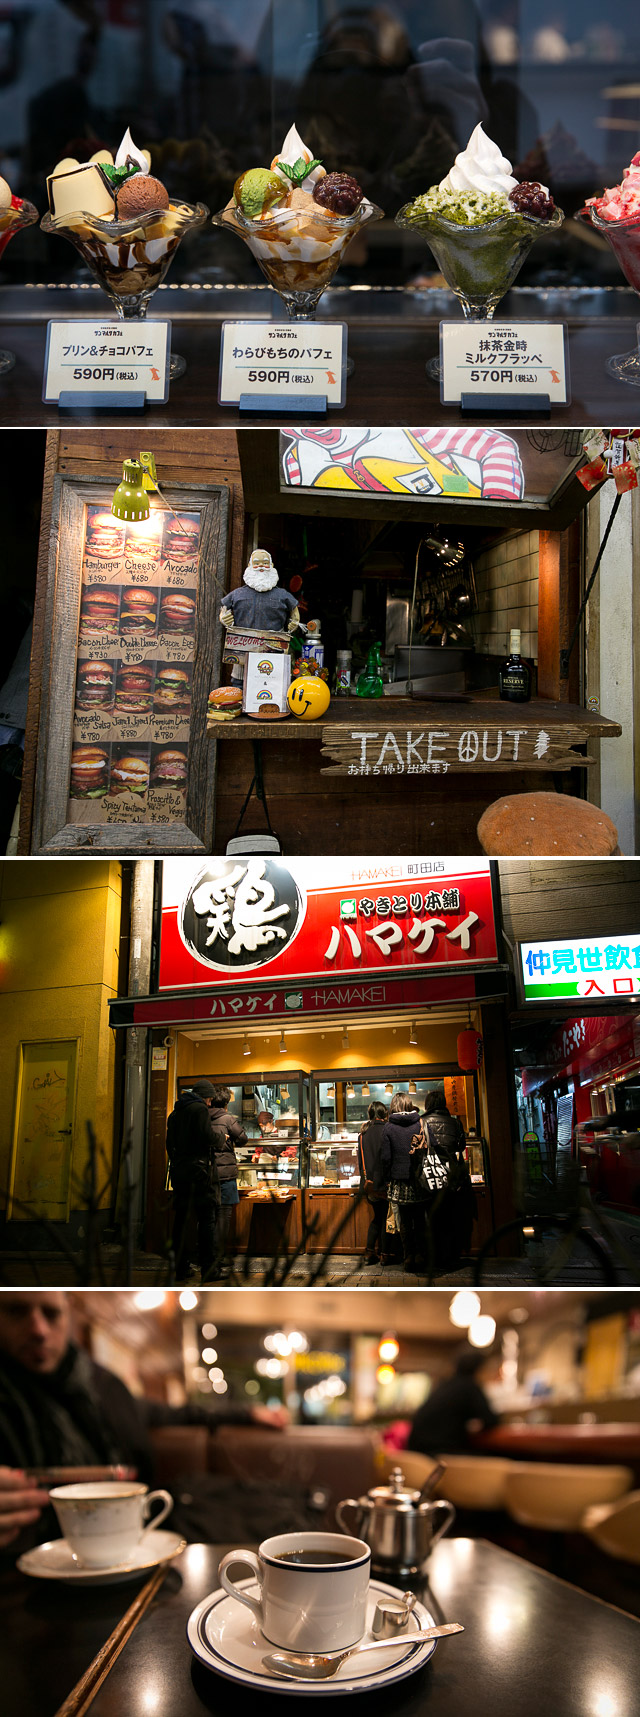 Food scene in Machida; fake paffe, fast food, yakitori shop, oobanyaki shop and long standing coffee shop Rosse